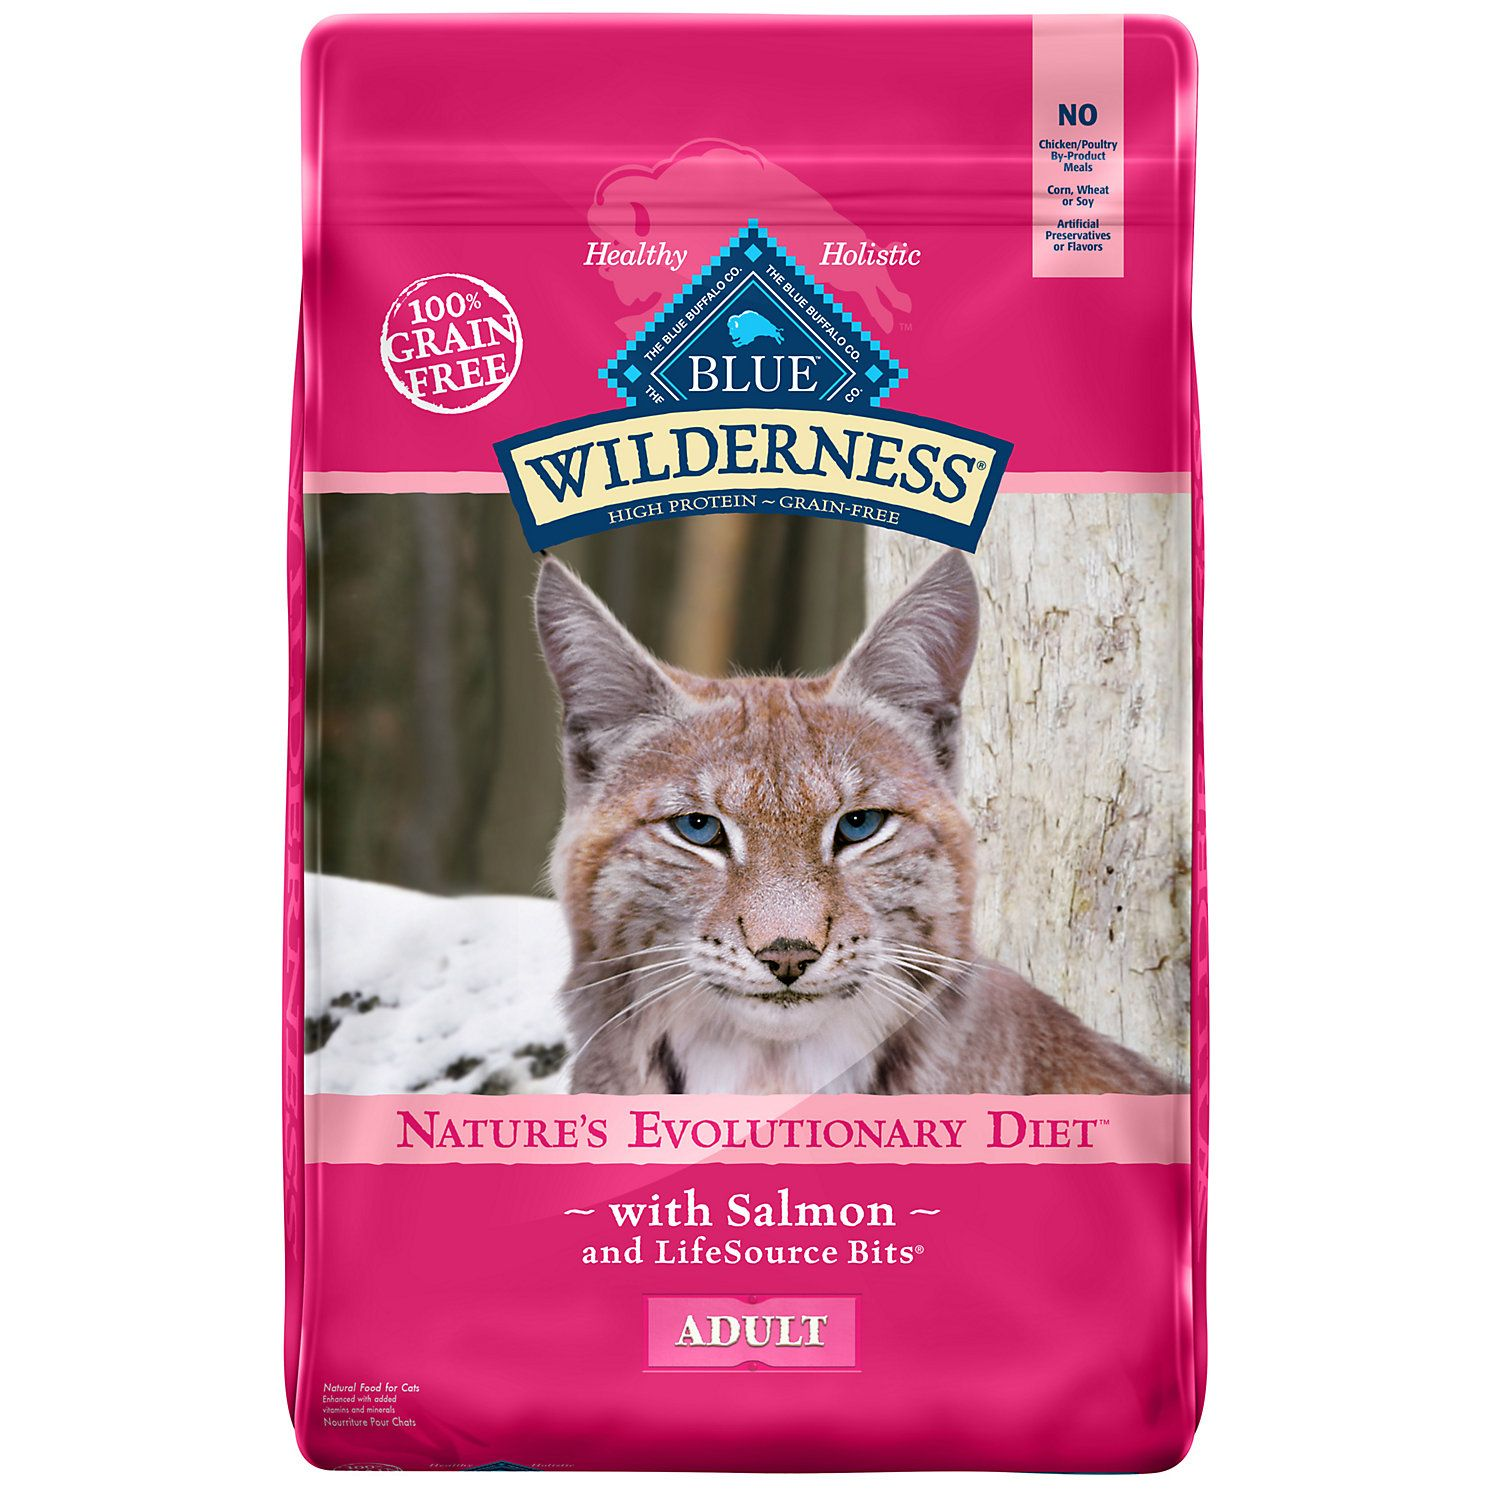 Why Do Cat Scratches Itch And Swell Dry Cat Food Blue Buffalo Cat Food